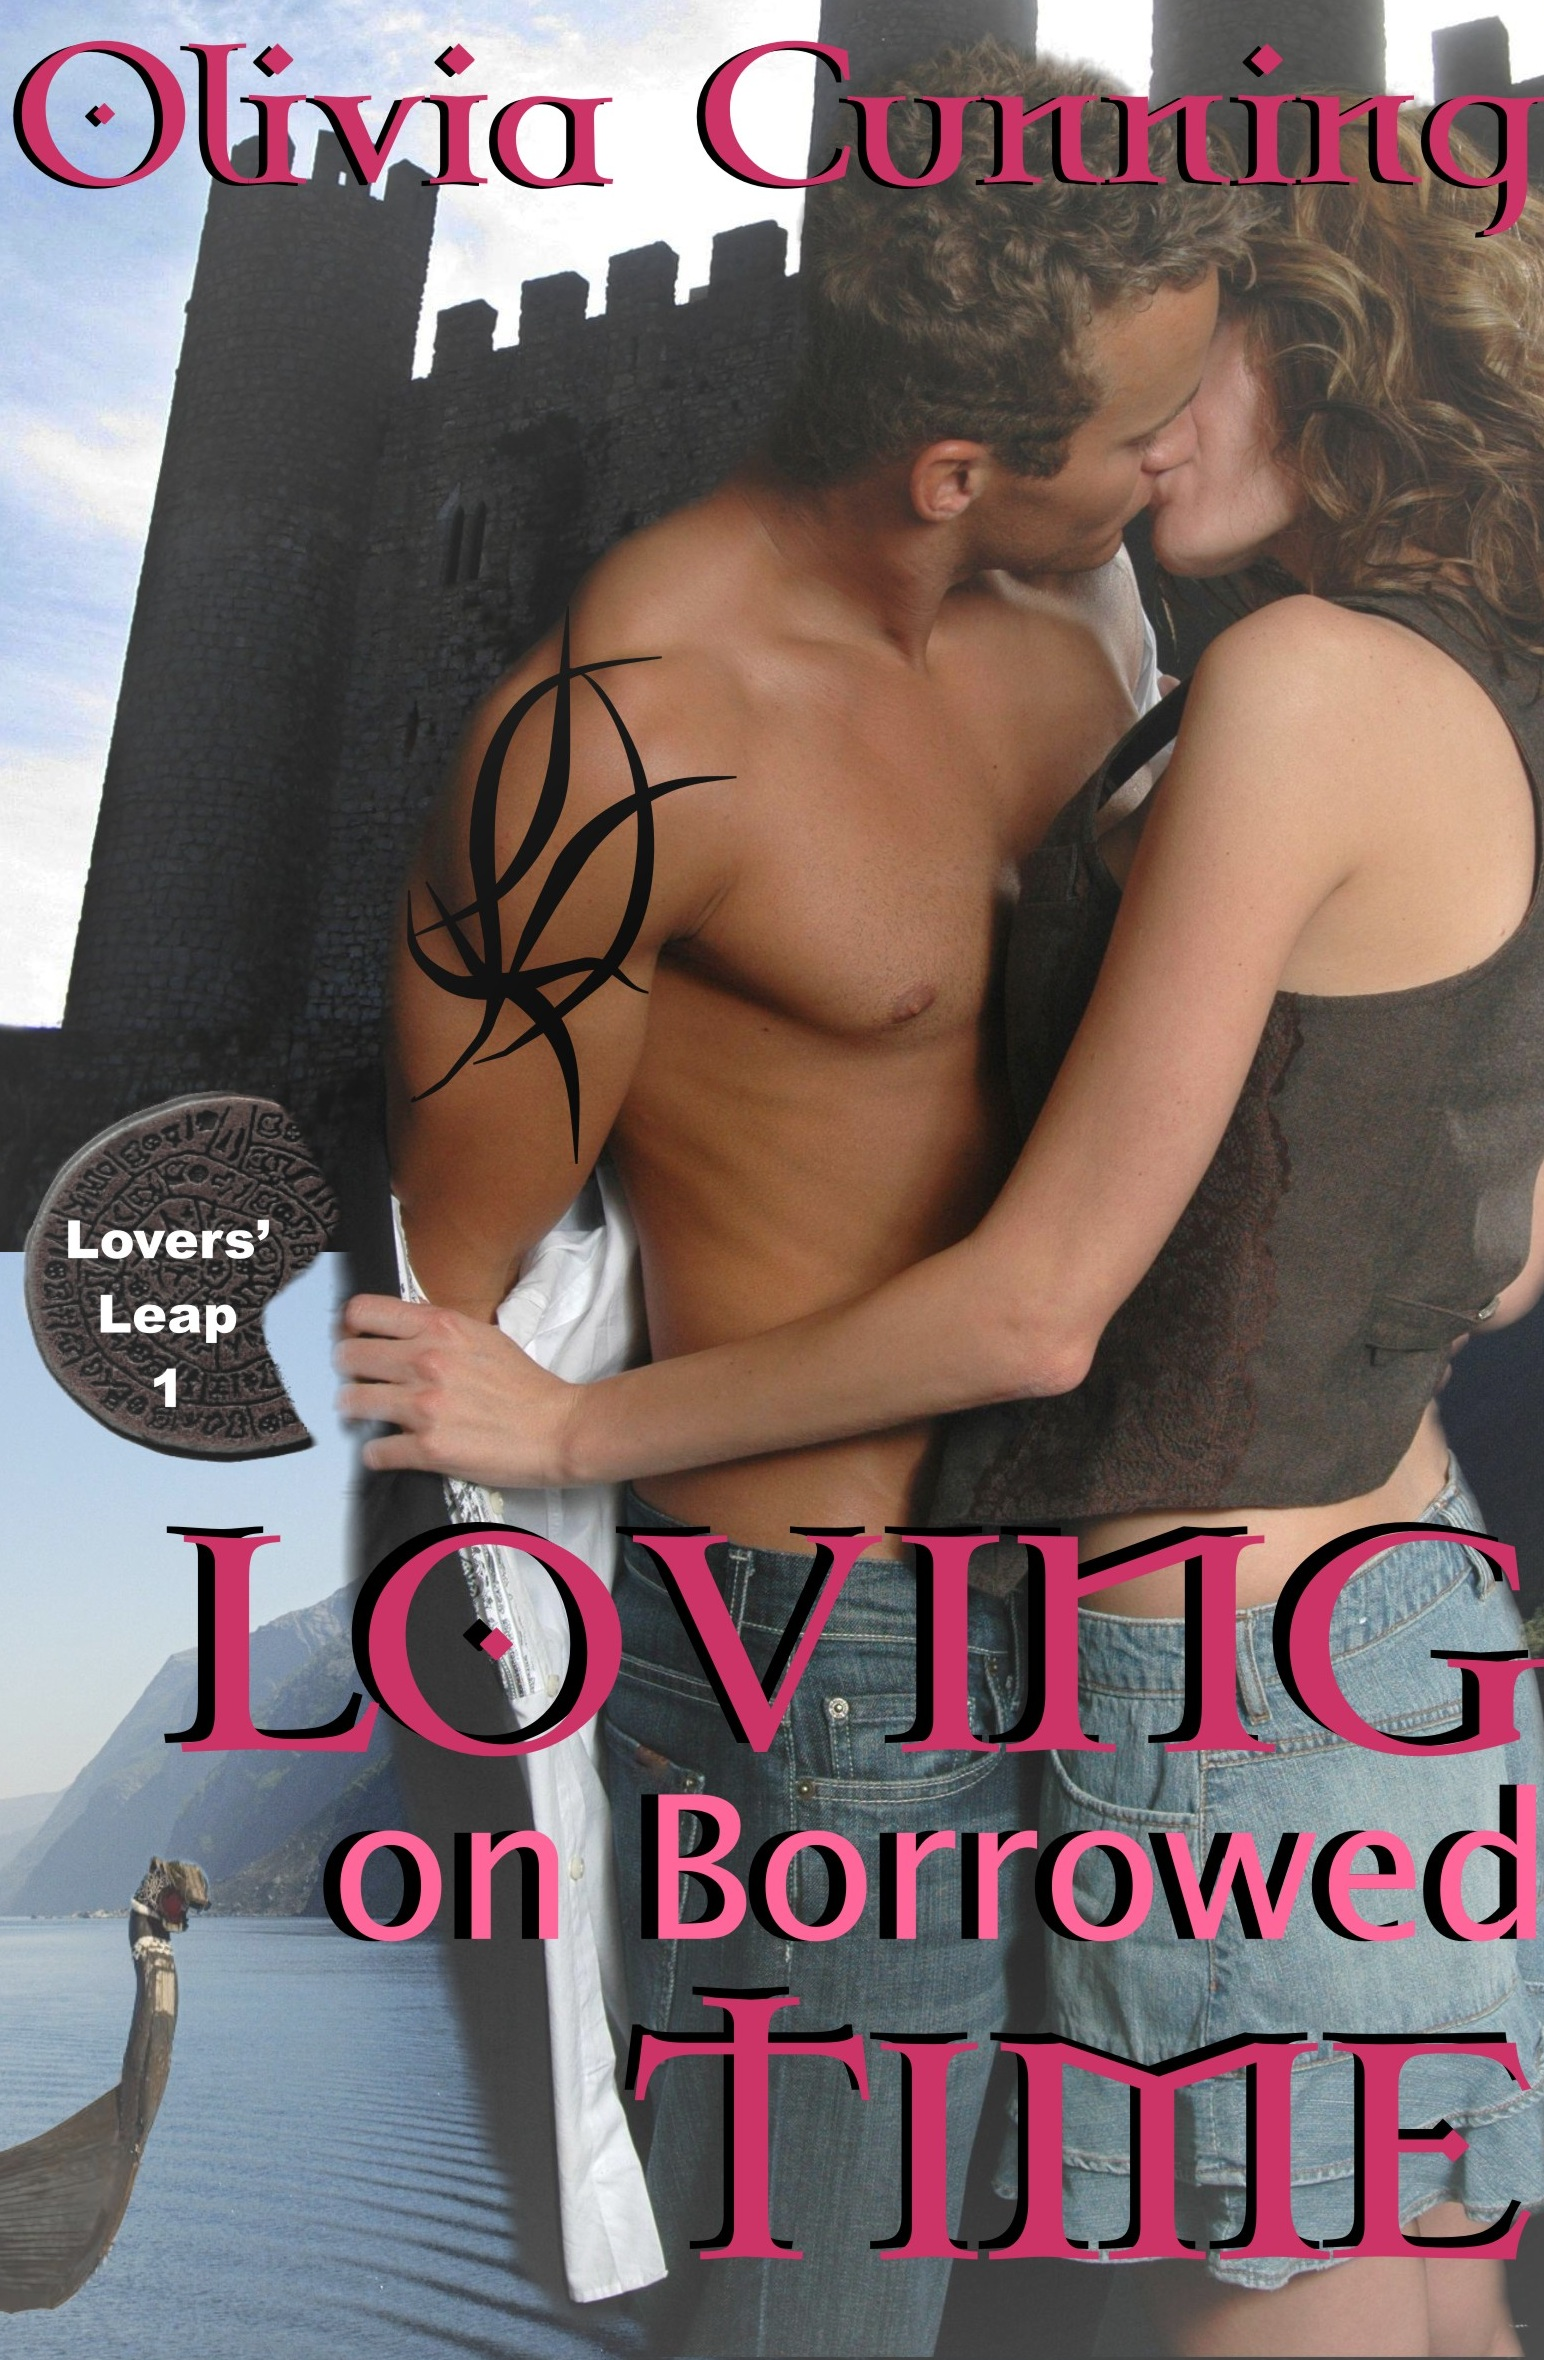 Olivia Cunning - Loving on Borrowed Time - Lovers Leap 1